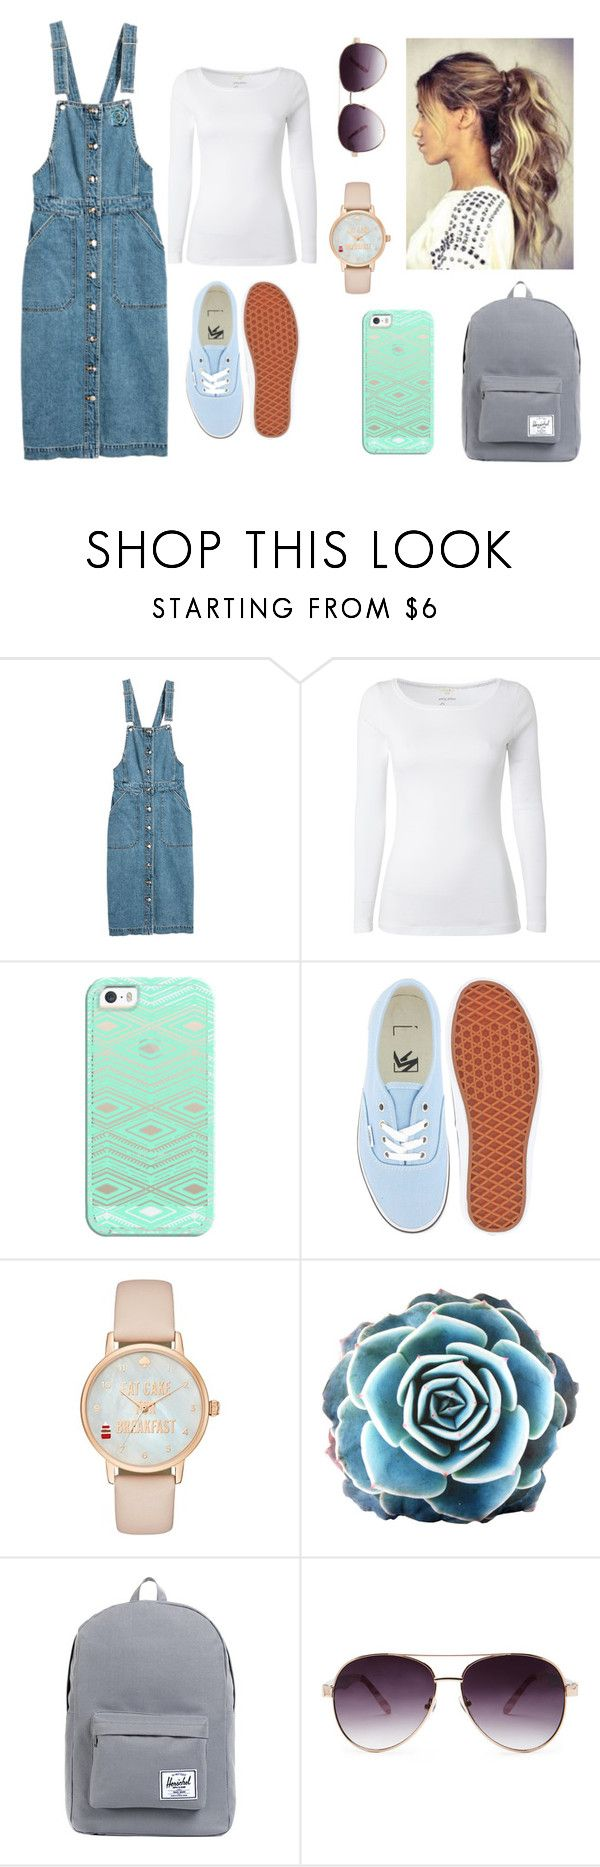 """""""Denim Overalls//Contest"""" by laney-light ❤ liked on Polyvore featuring H&M, White Stuff, Casetify, Vans, Kate Spade, Herschel Supply Co. and Forever 21"""